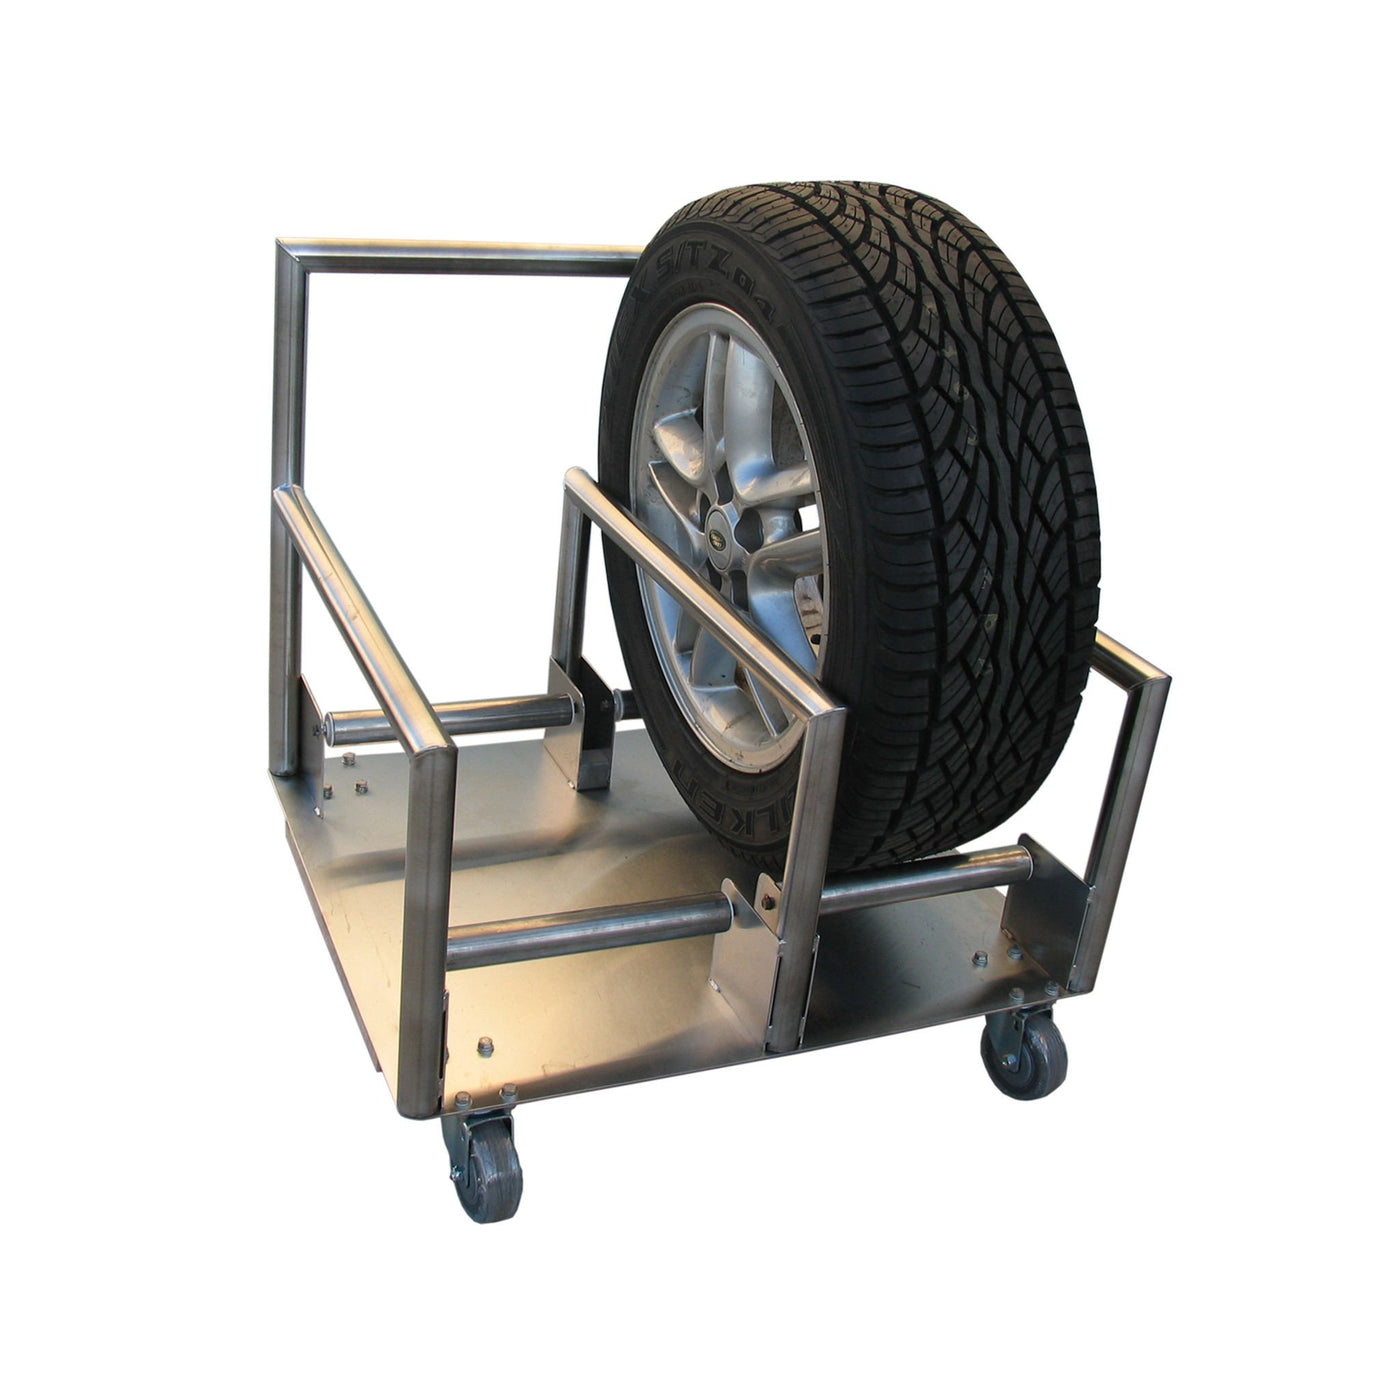 Tire Stand-Laboratory Accessory-Mortech Manufacturing Company Inc. Quality Stainless Steel Autopsy, Morgue, Funeral Home, Necropsy, Veterinary / Anatomy, Dissection Equipment and Accessories